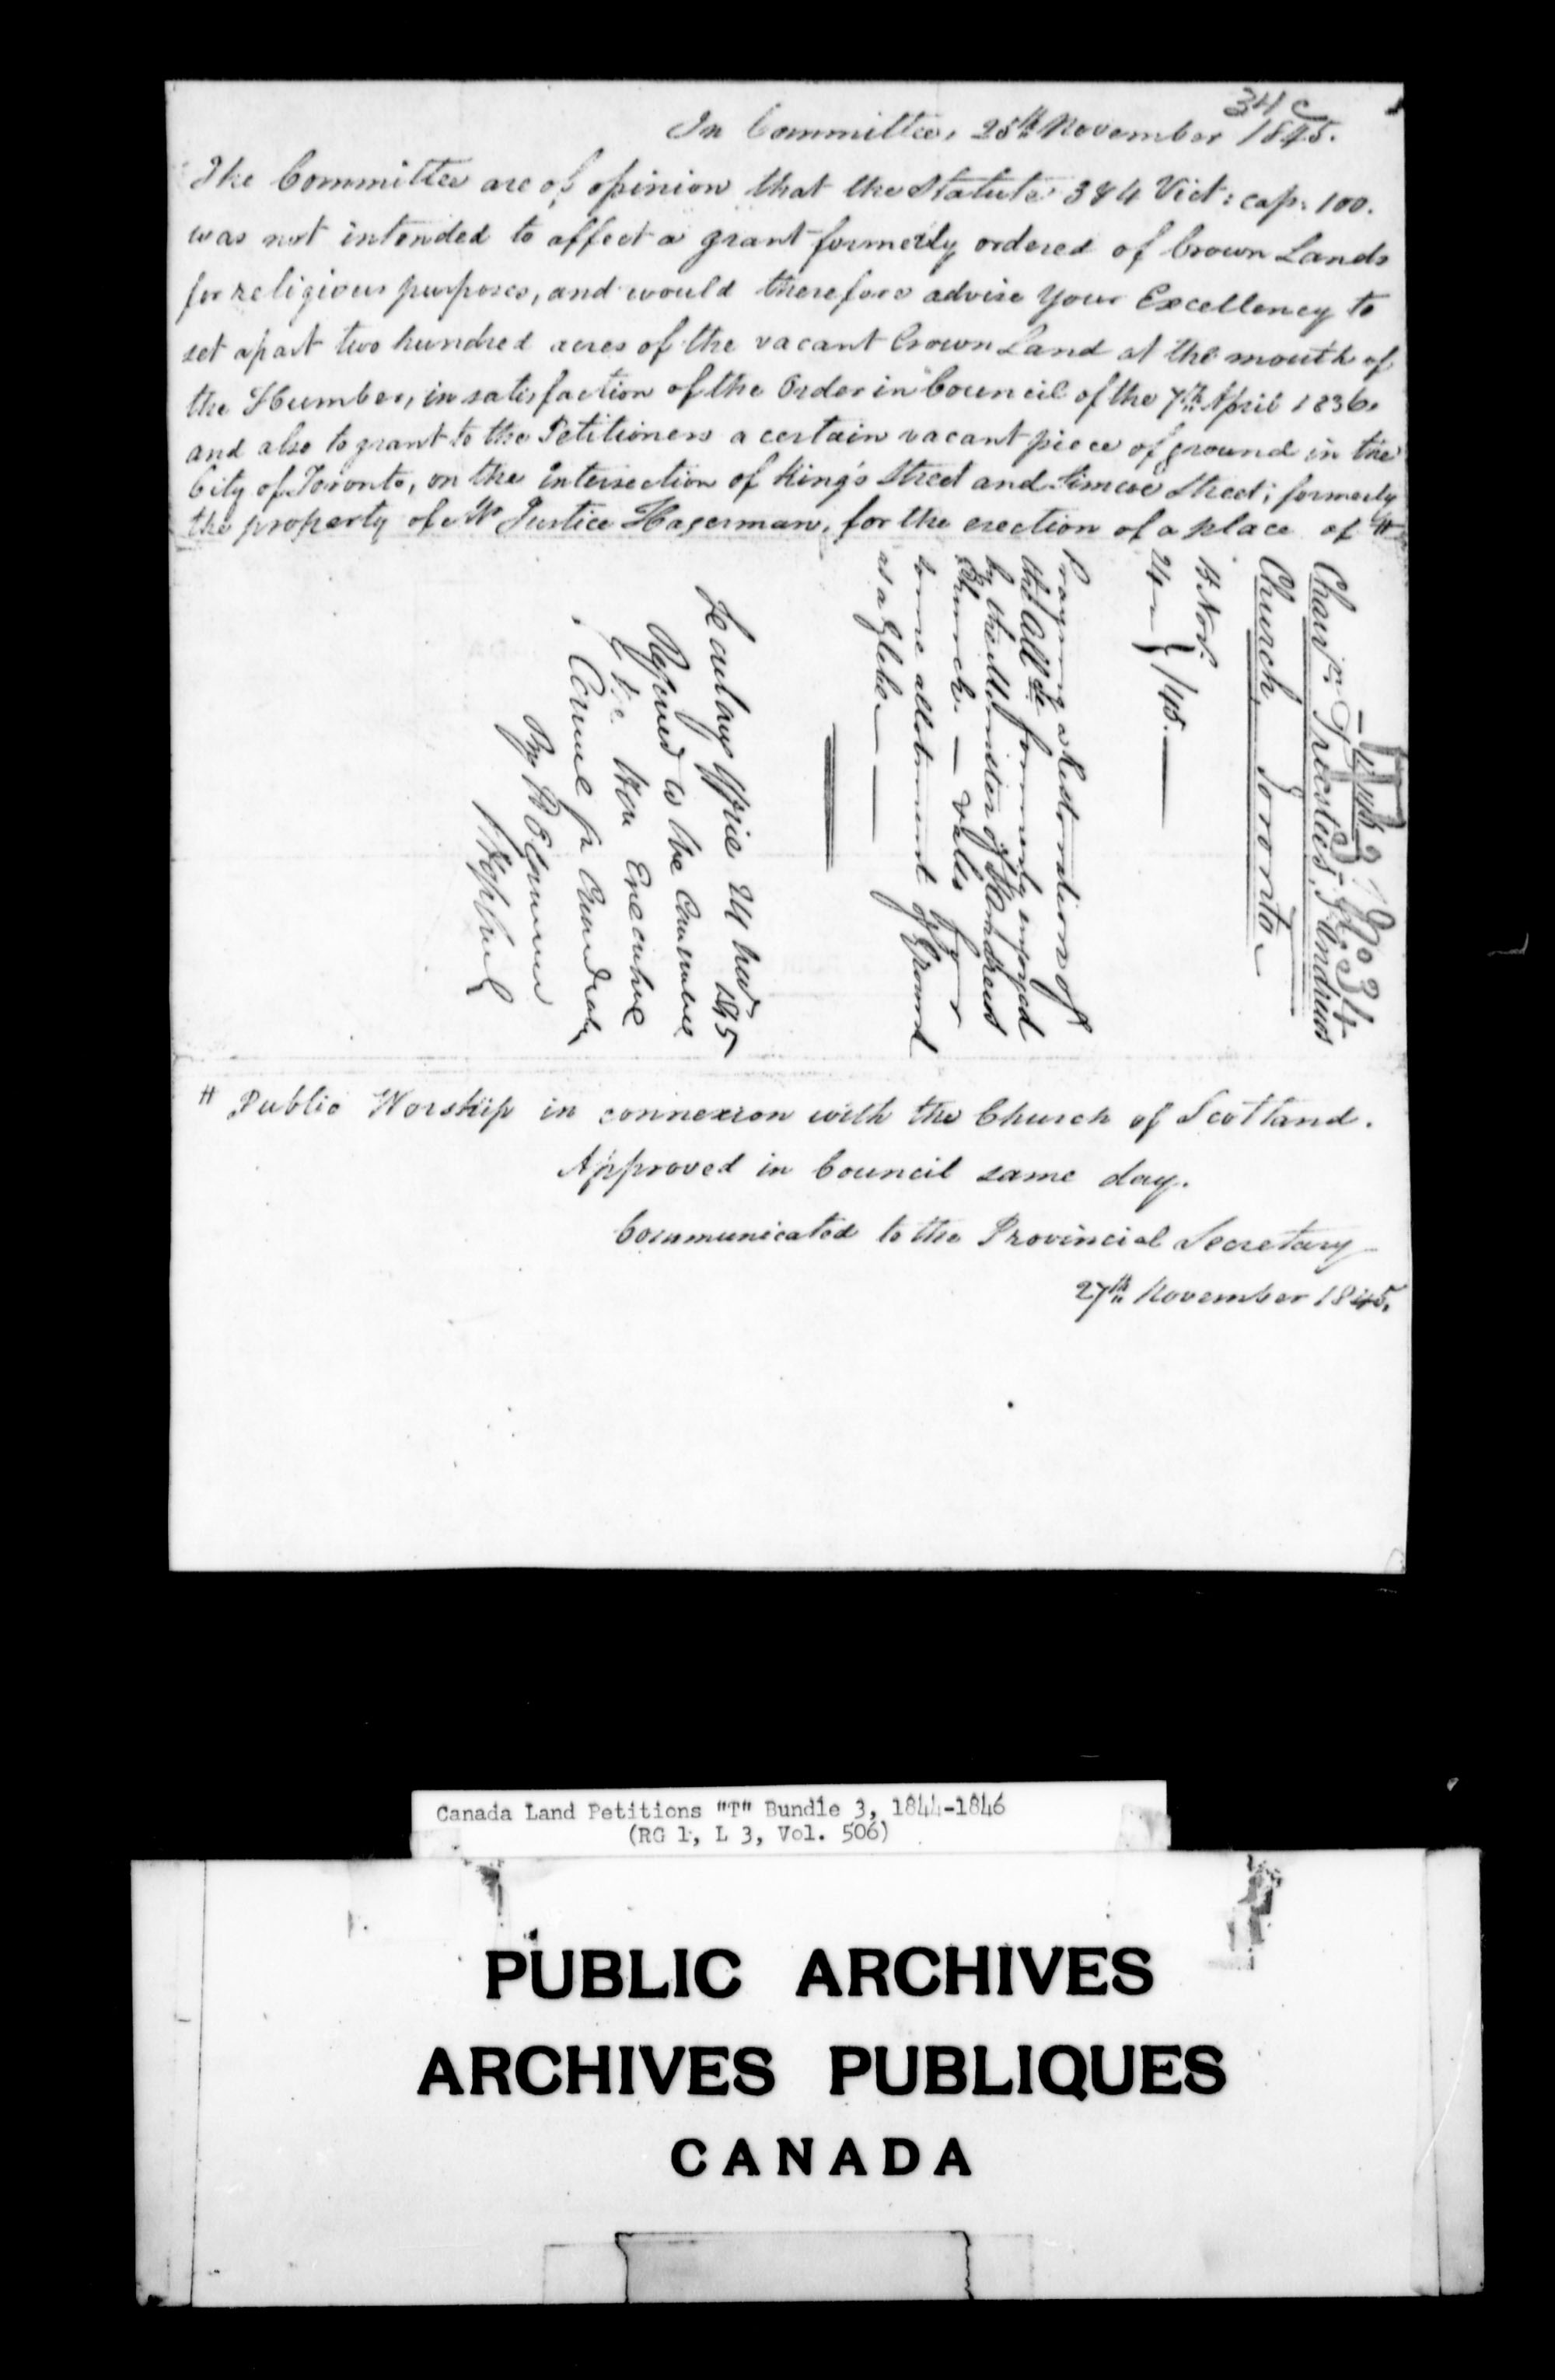 Title: Upper Canada Land Petitions (1763-1865) - Mikan Number: 205131 - Microform: c-2838